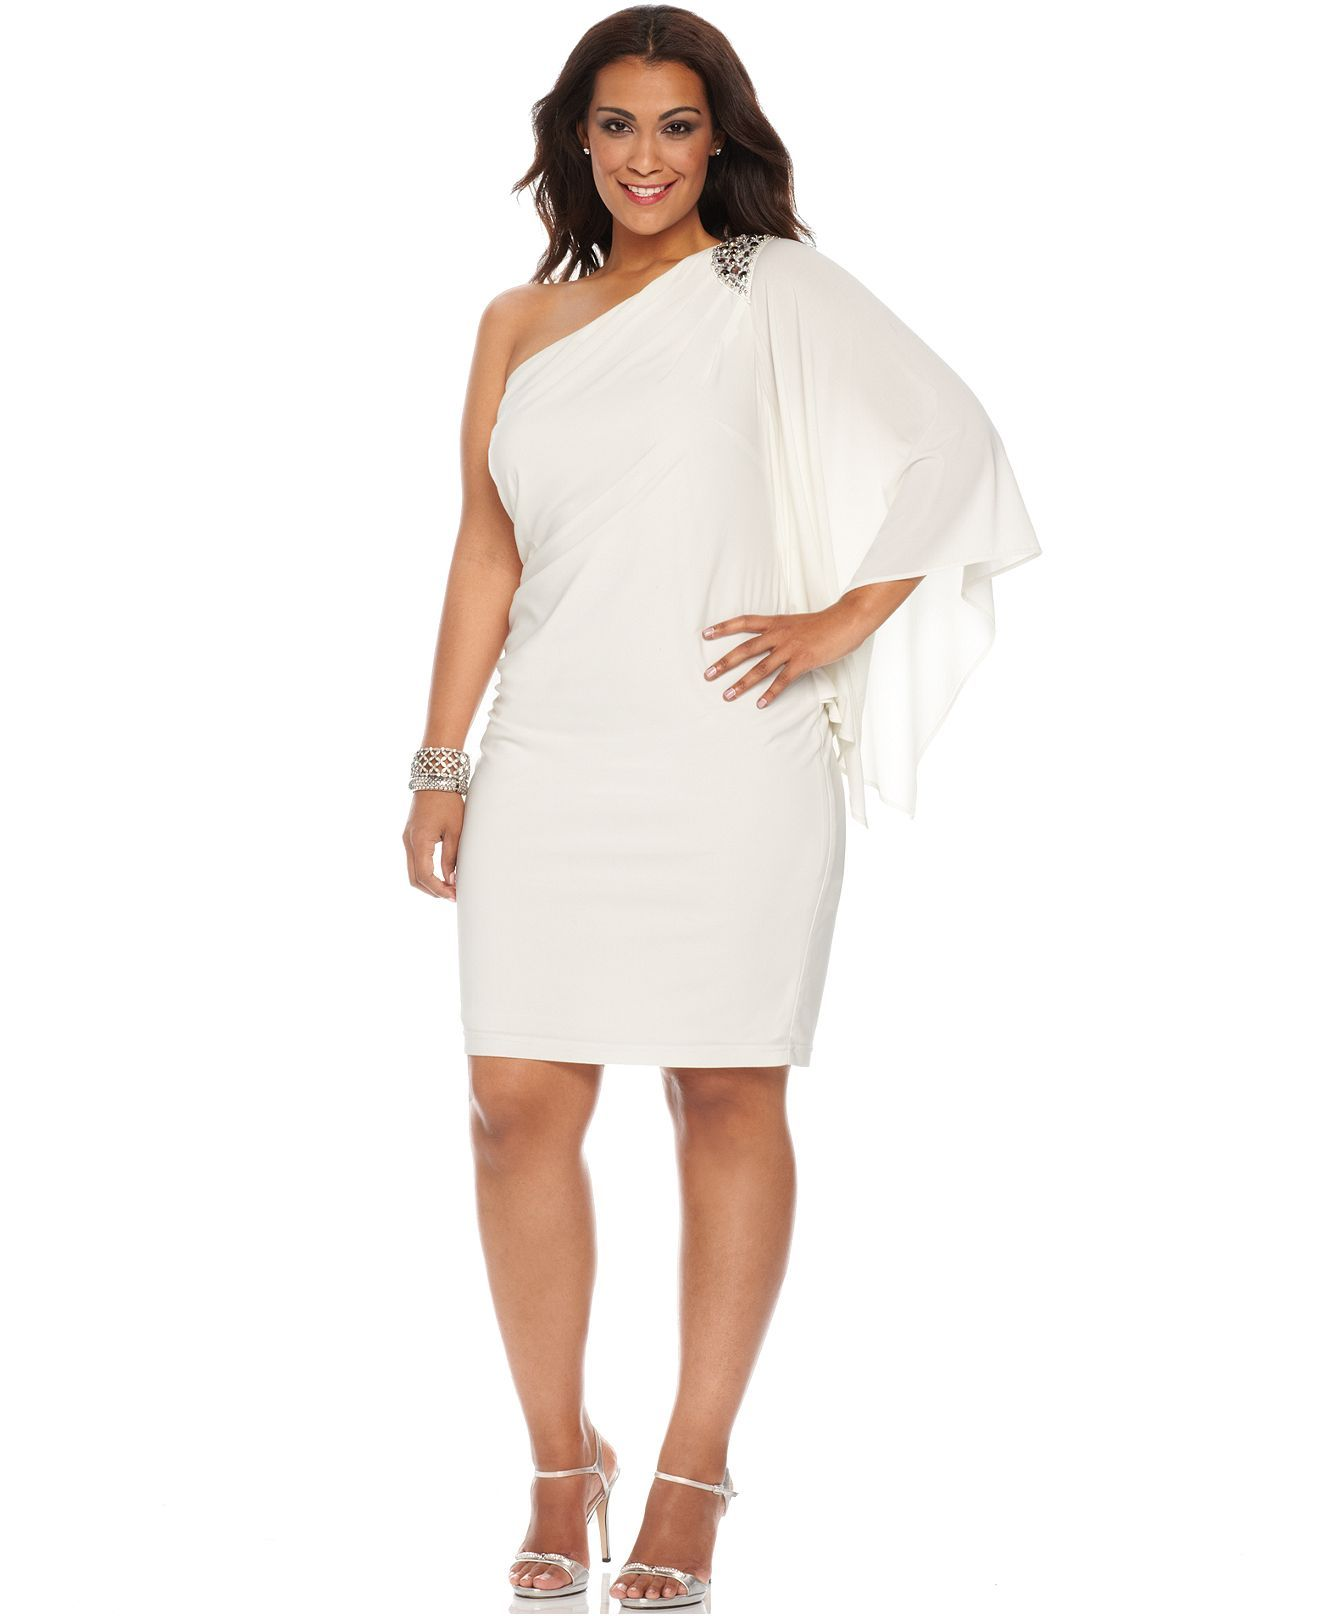 R Richards Plus Size Dress Three Quarter Flutter Sleeve One